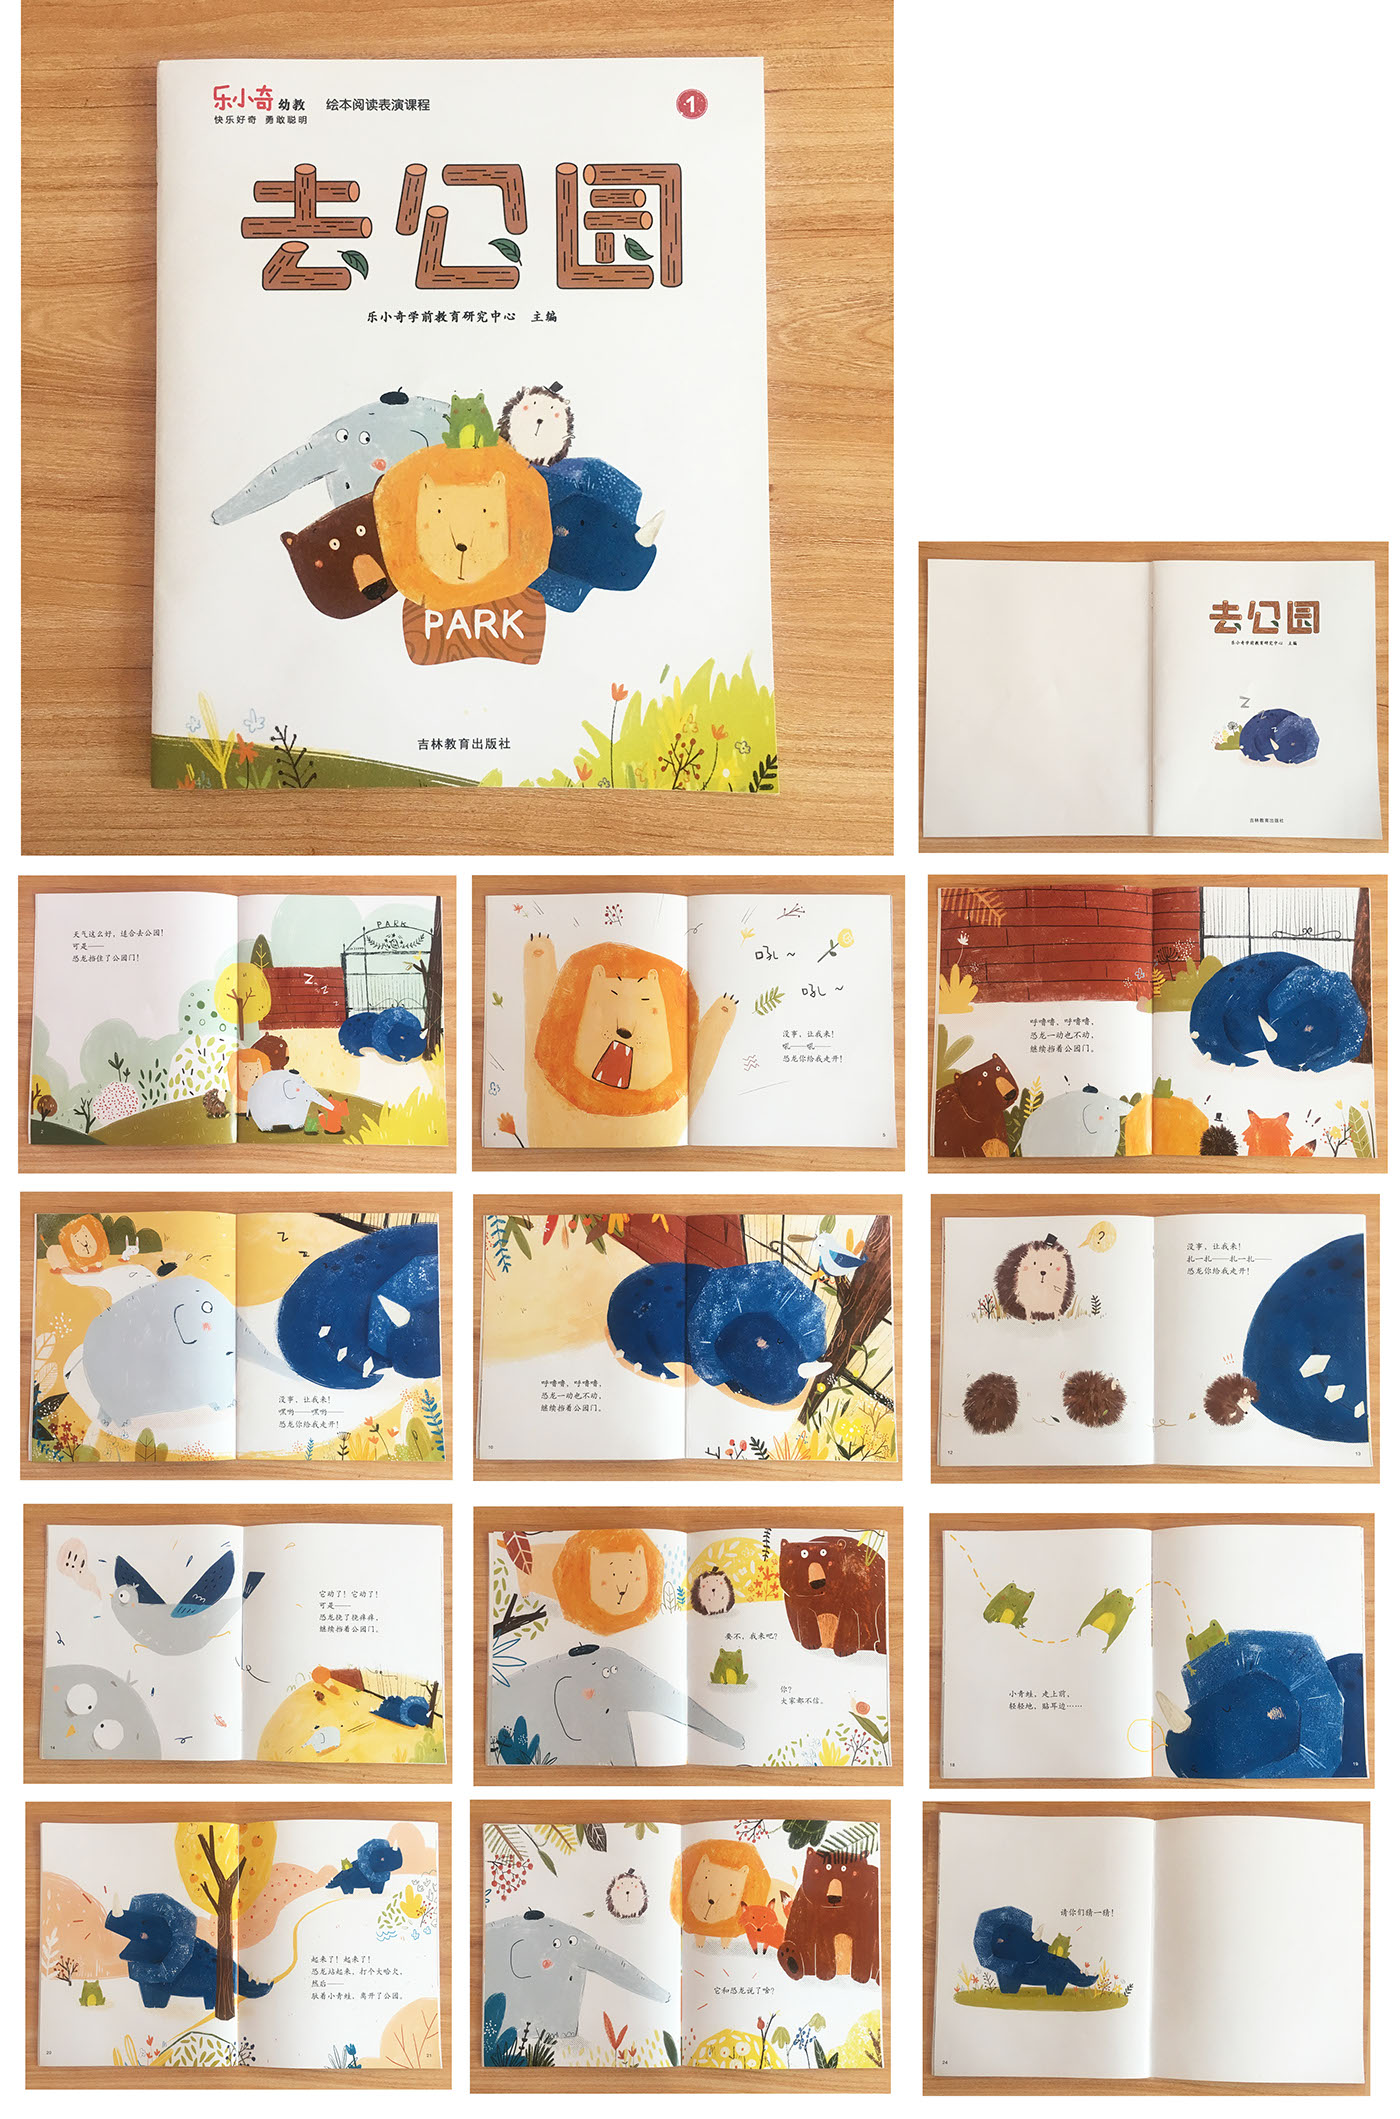 Children's picture book《Go to the park》 on Behance